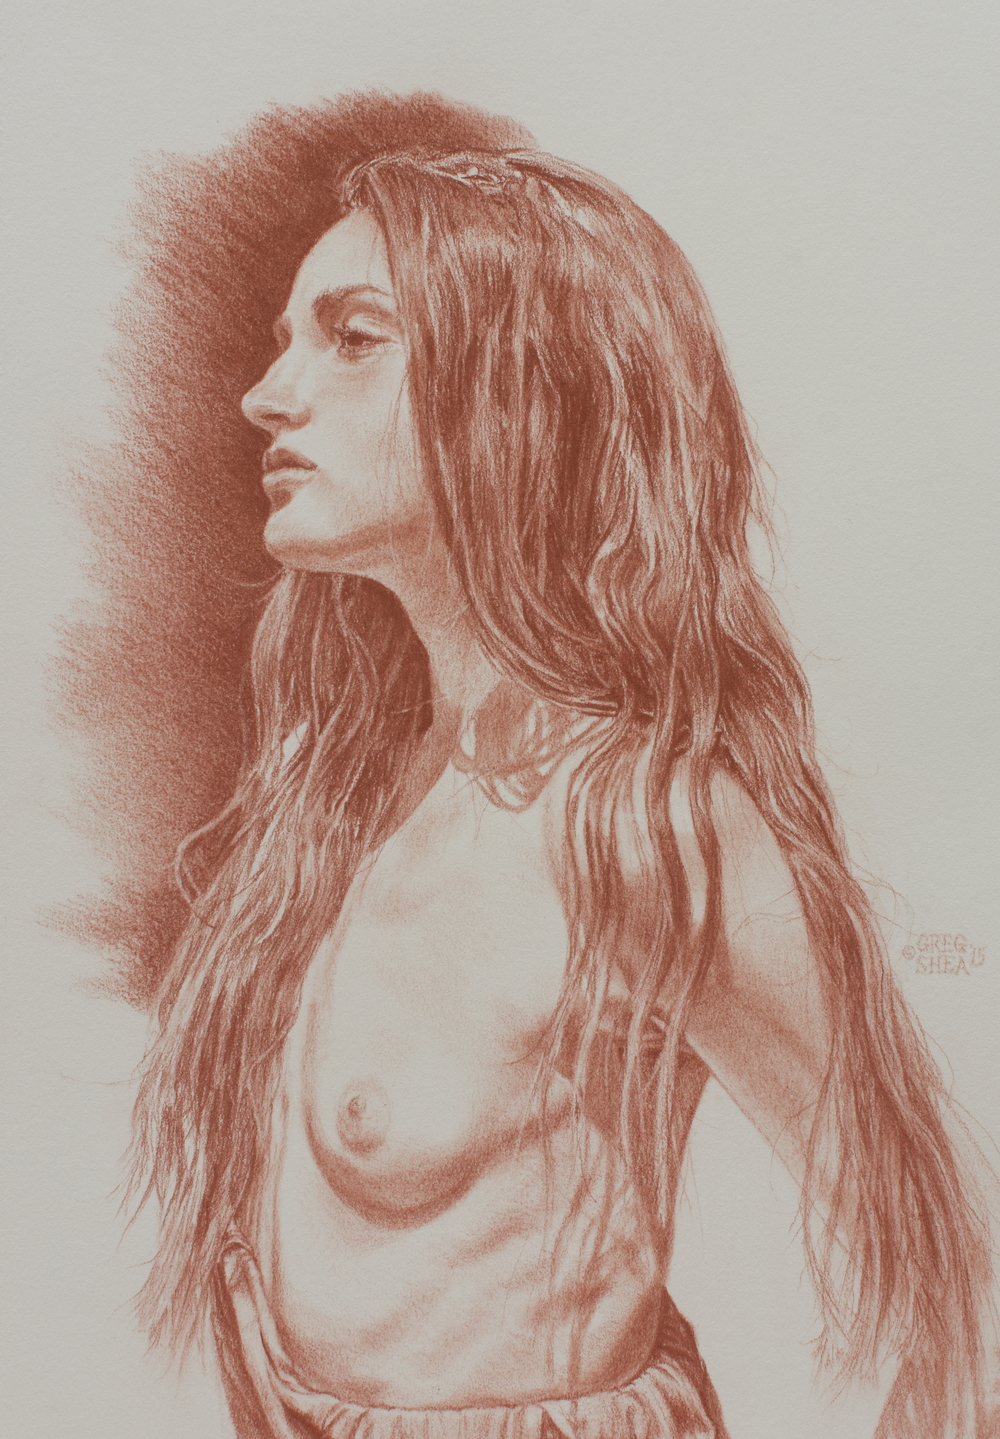 Lethe,  2015. Pastel pencil on toned paper. Available.